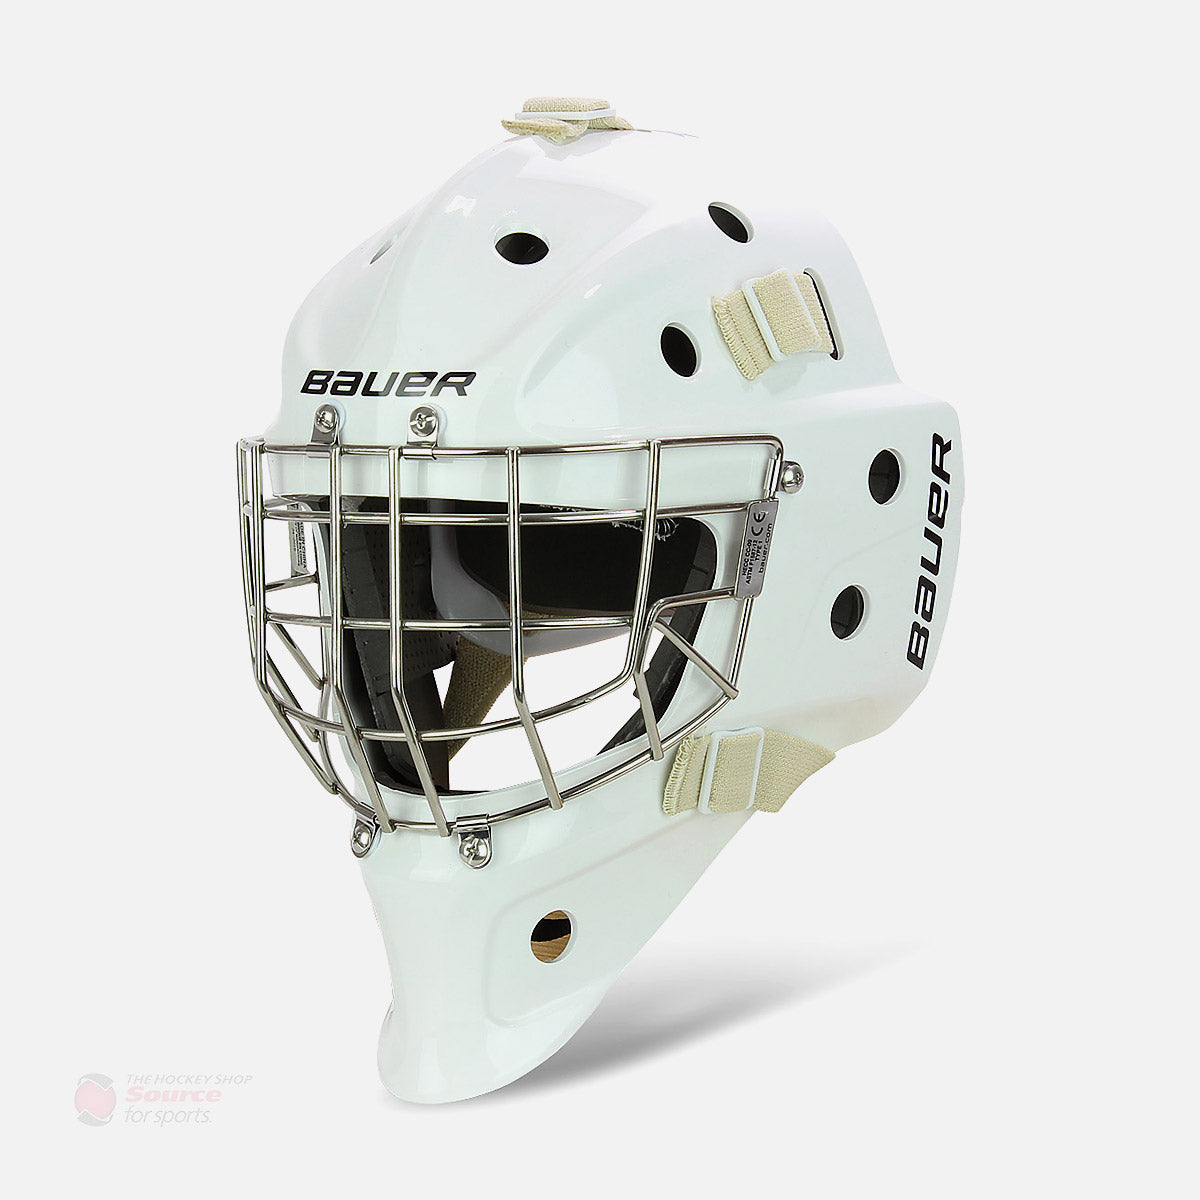 Bauer Profile 940X Junior Goalie Mask - White